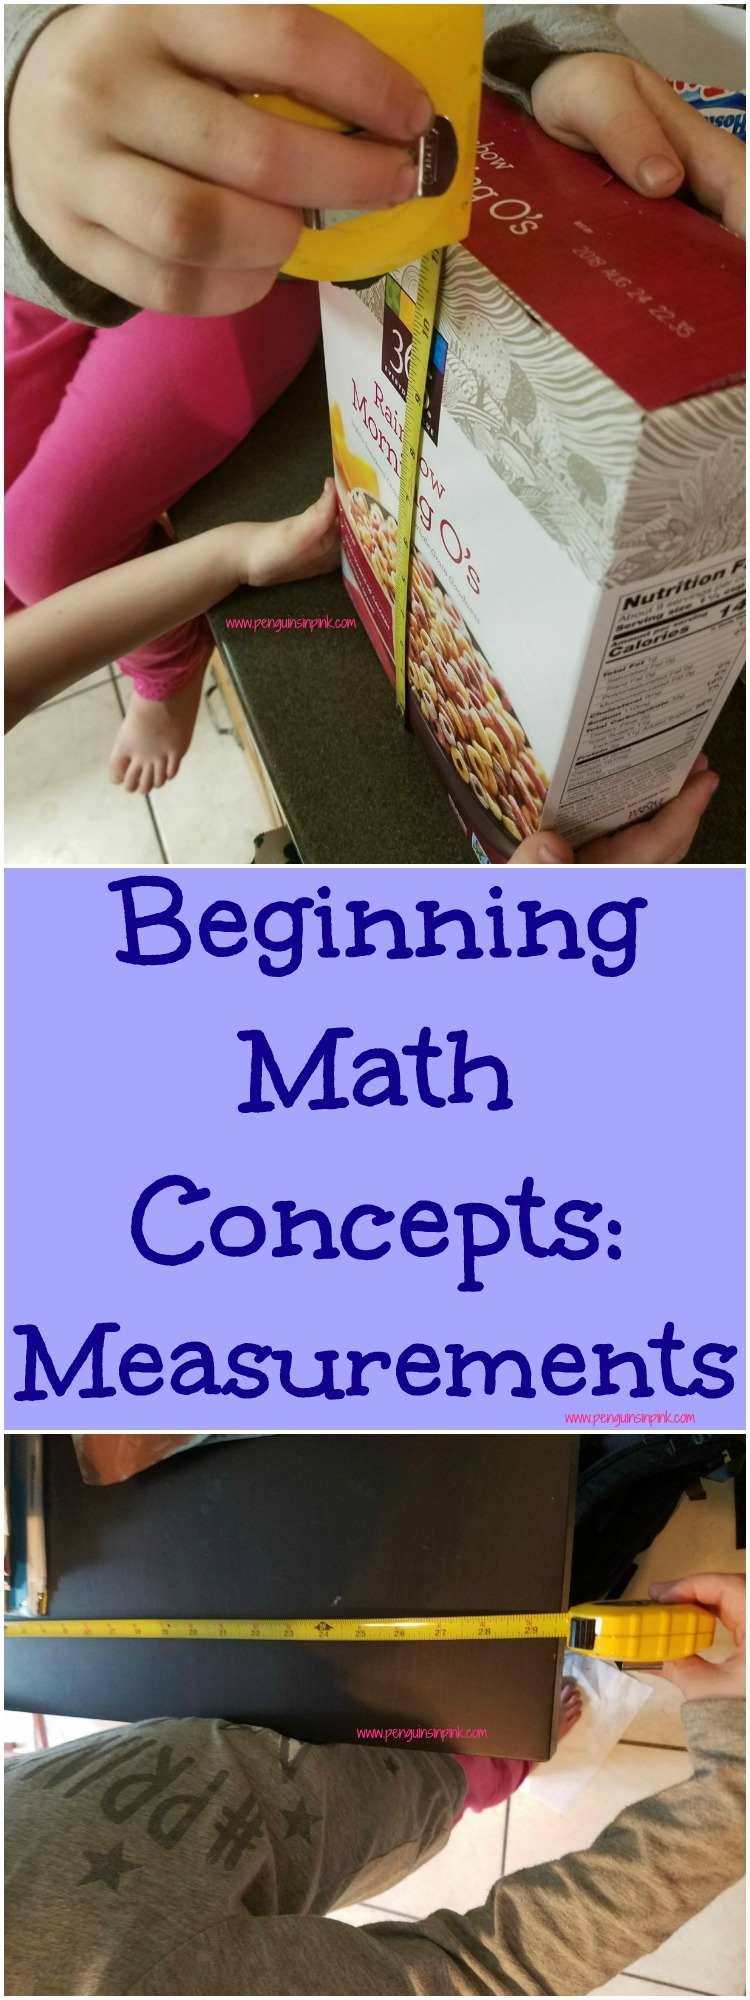 Beginning Math Concepts: Measurements contains 7 activities to introduce the math concept of measurement and reinforcing counting, and greater than, less than, or equal to using different sized objects